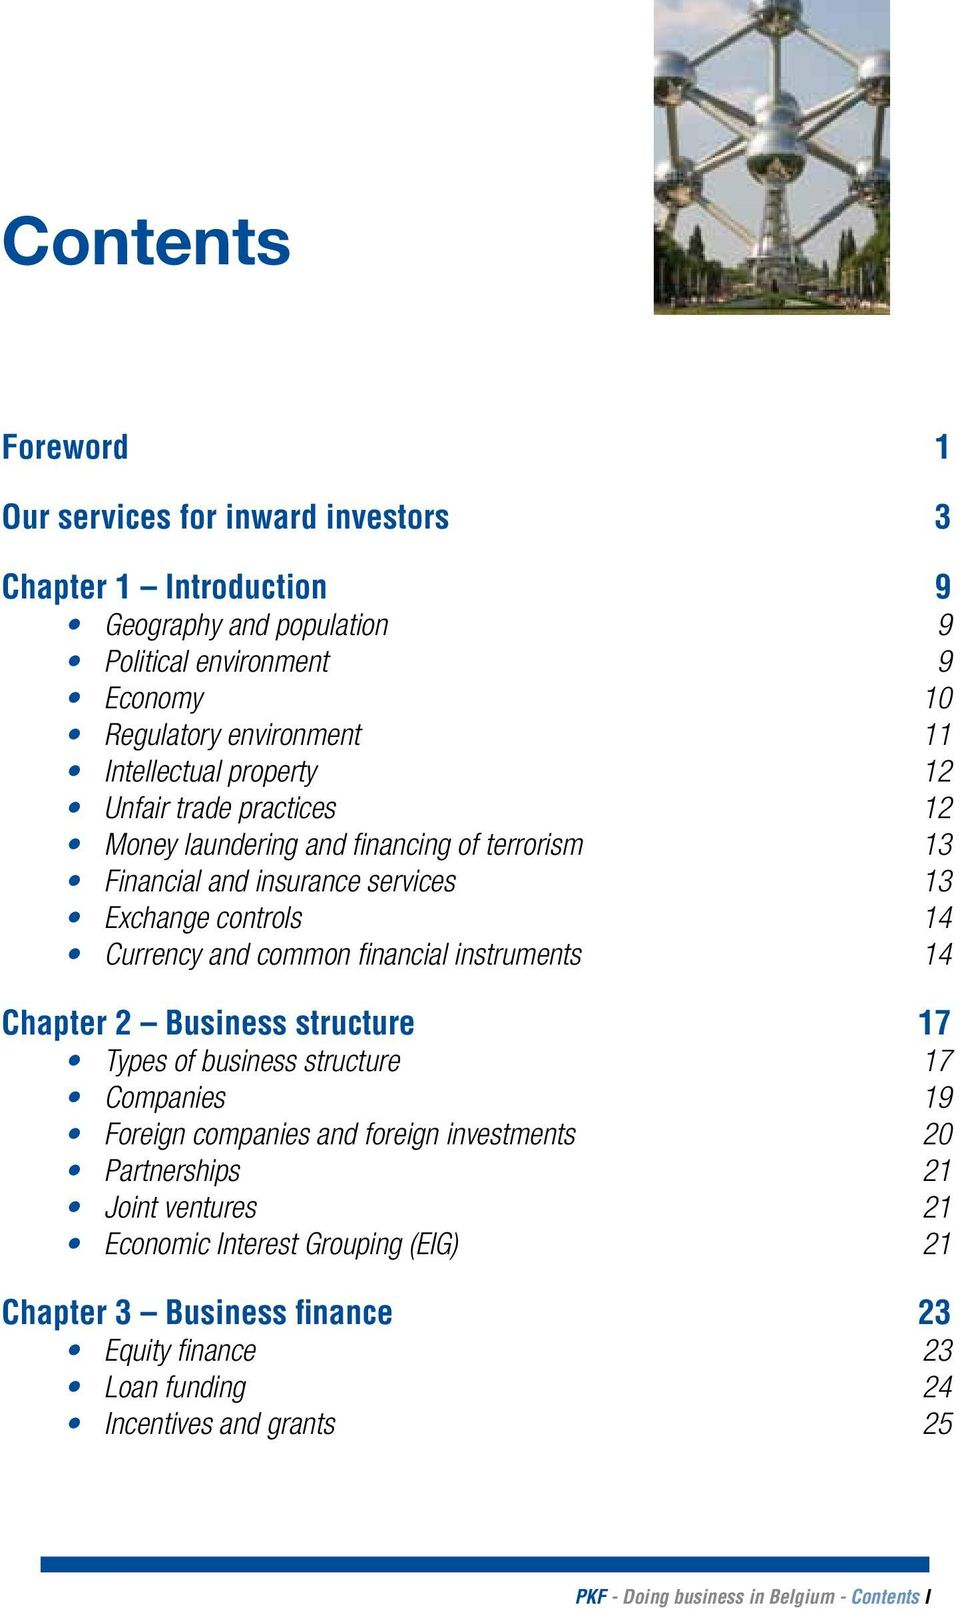 common financial instruments 14 Chapter 2 Business structure 17 Types of business structure 17 Companies 19 Foreign companies and foreign investments 20 Partnerships 21